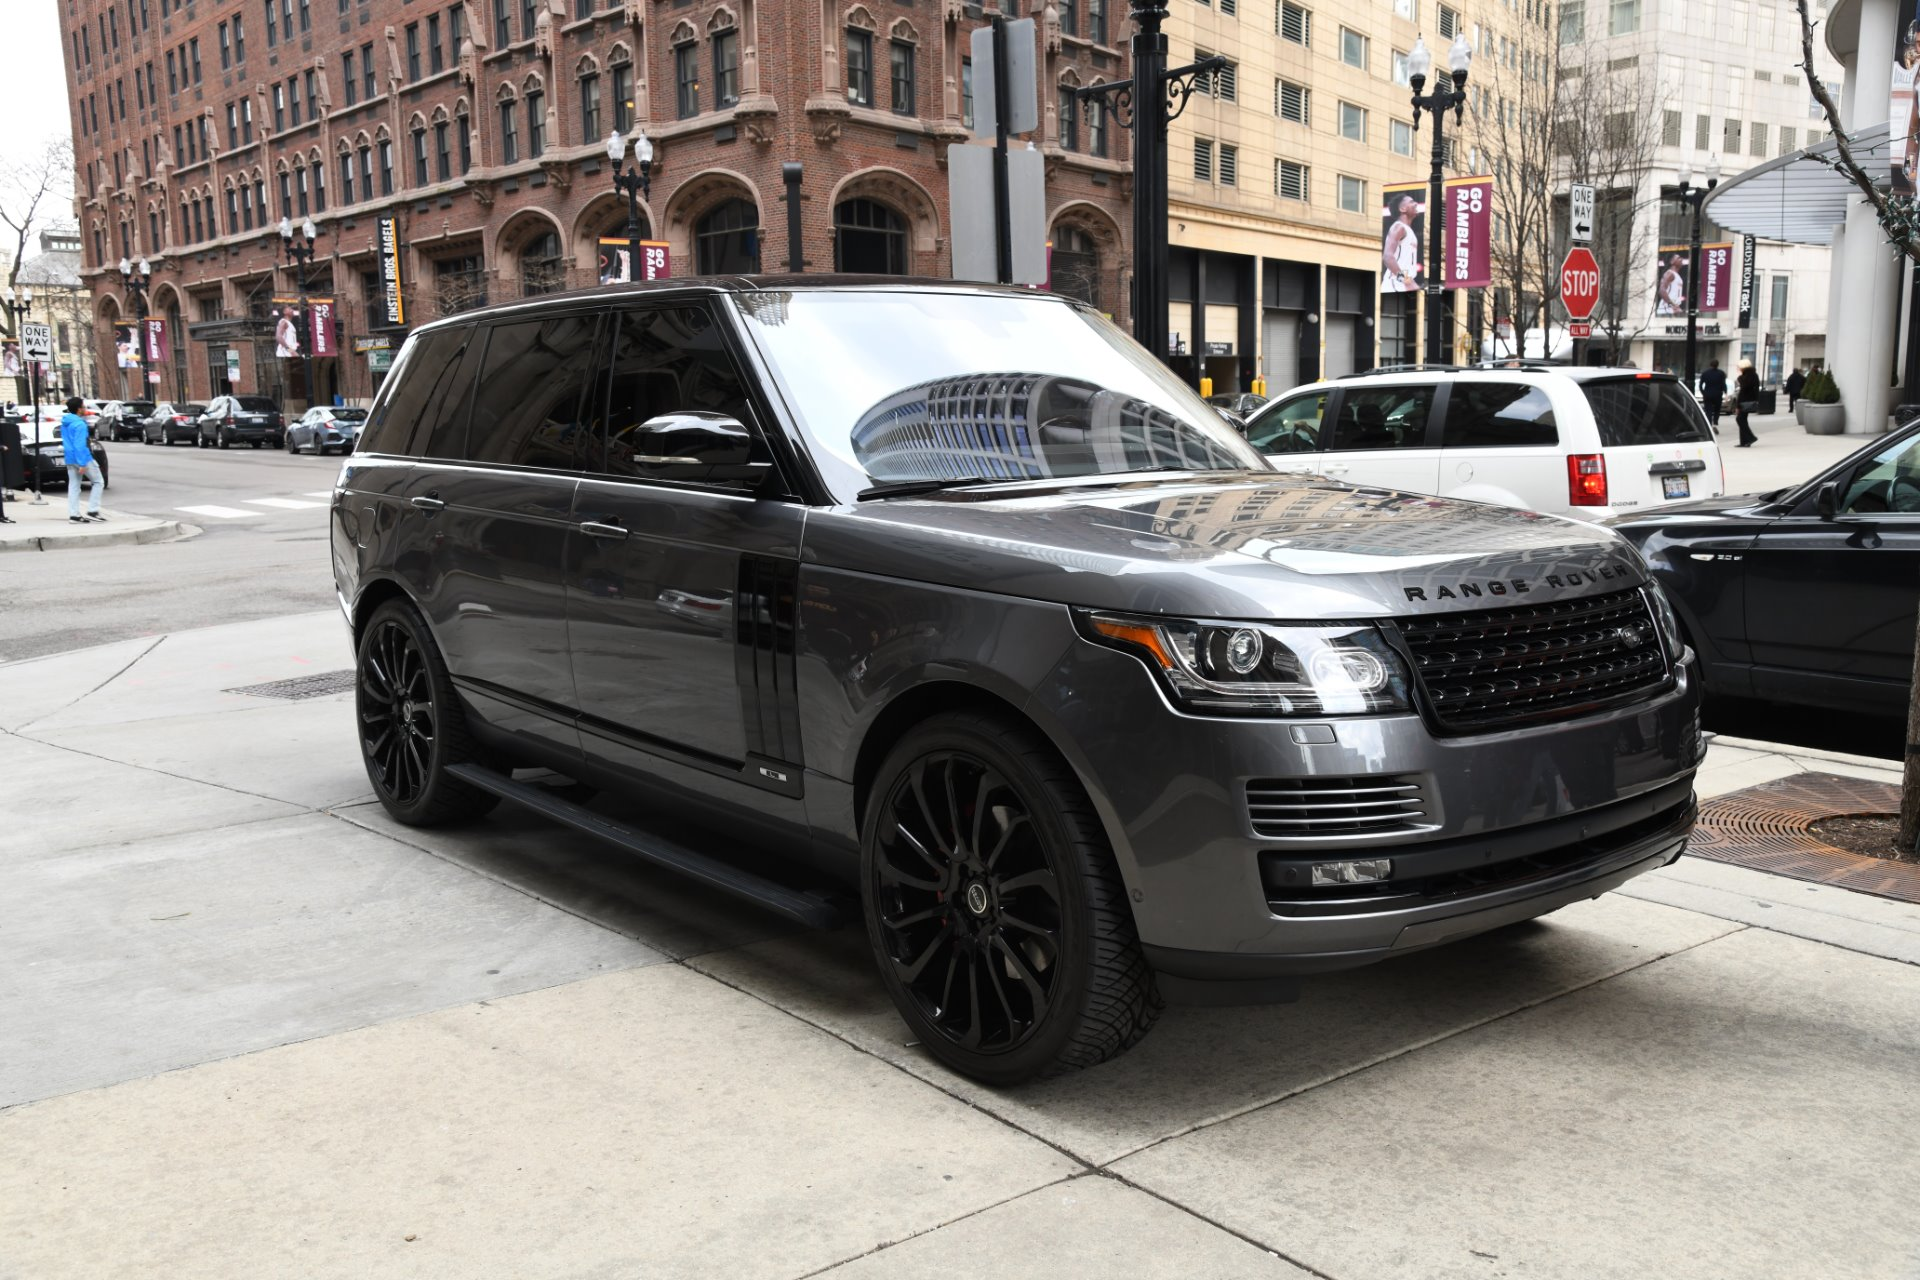 WRG-8579] Range Rover Supercharged 2016